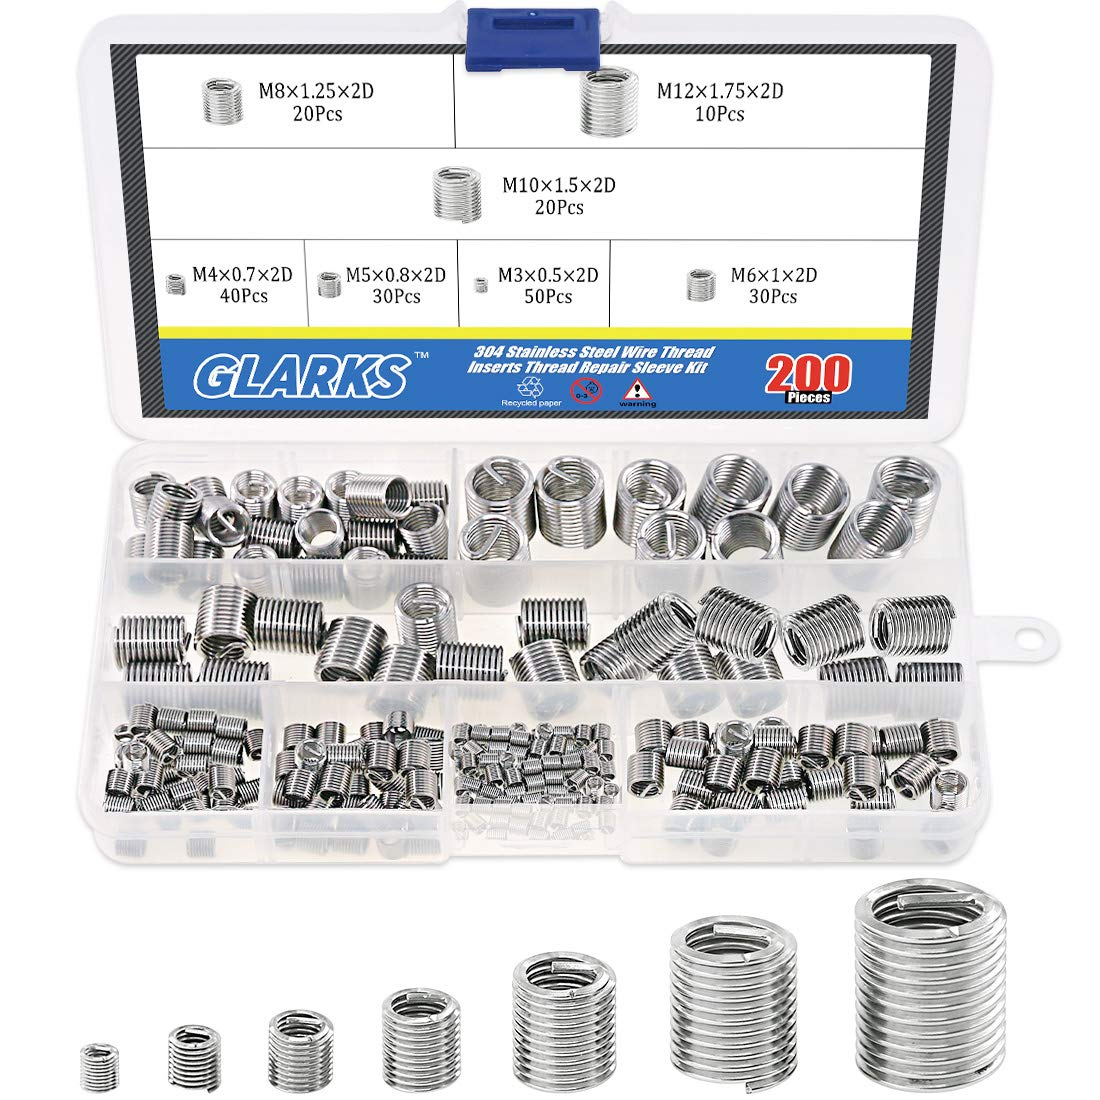 Glarks 200Pcs Wire Inserts Screws Minneapolis Mall Assortment Sta Sleeve Manufacturer direct delivery 304 Kit